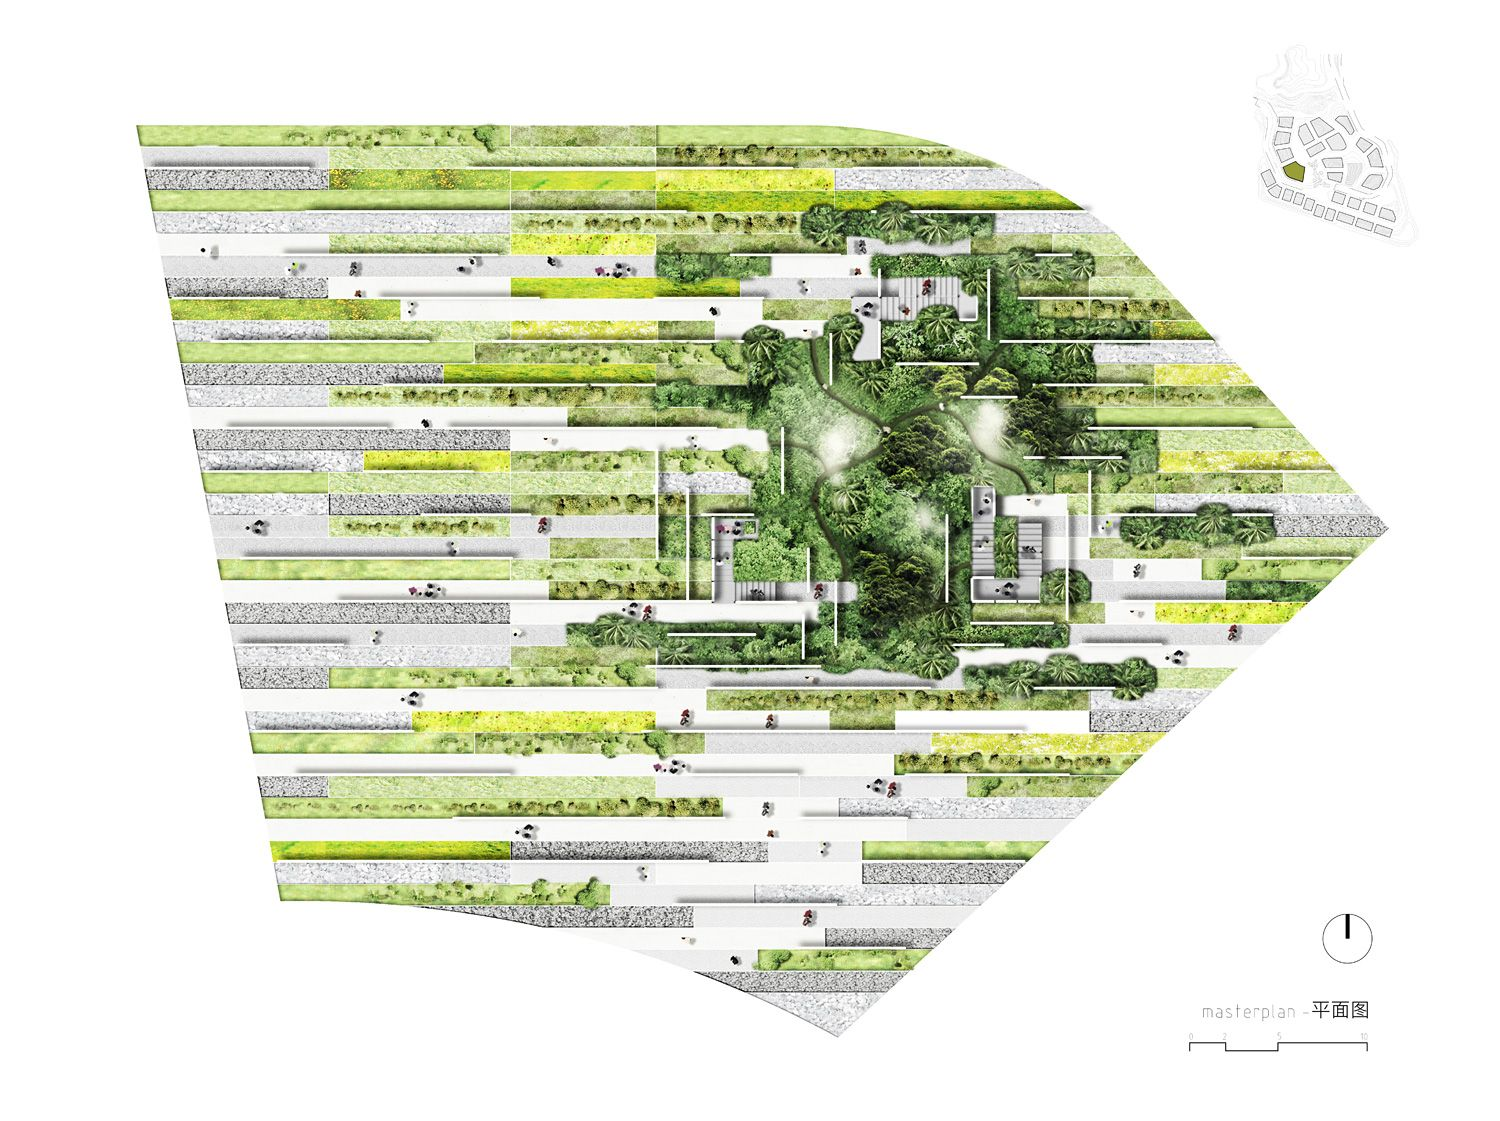 Atelier EEM, Alessandro delli Ponti, Verdiana Spicciarelli --> The Forest Tissue Garden, a 3rd prize winner for the 10th International Garden Expo in Hubei, China